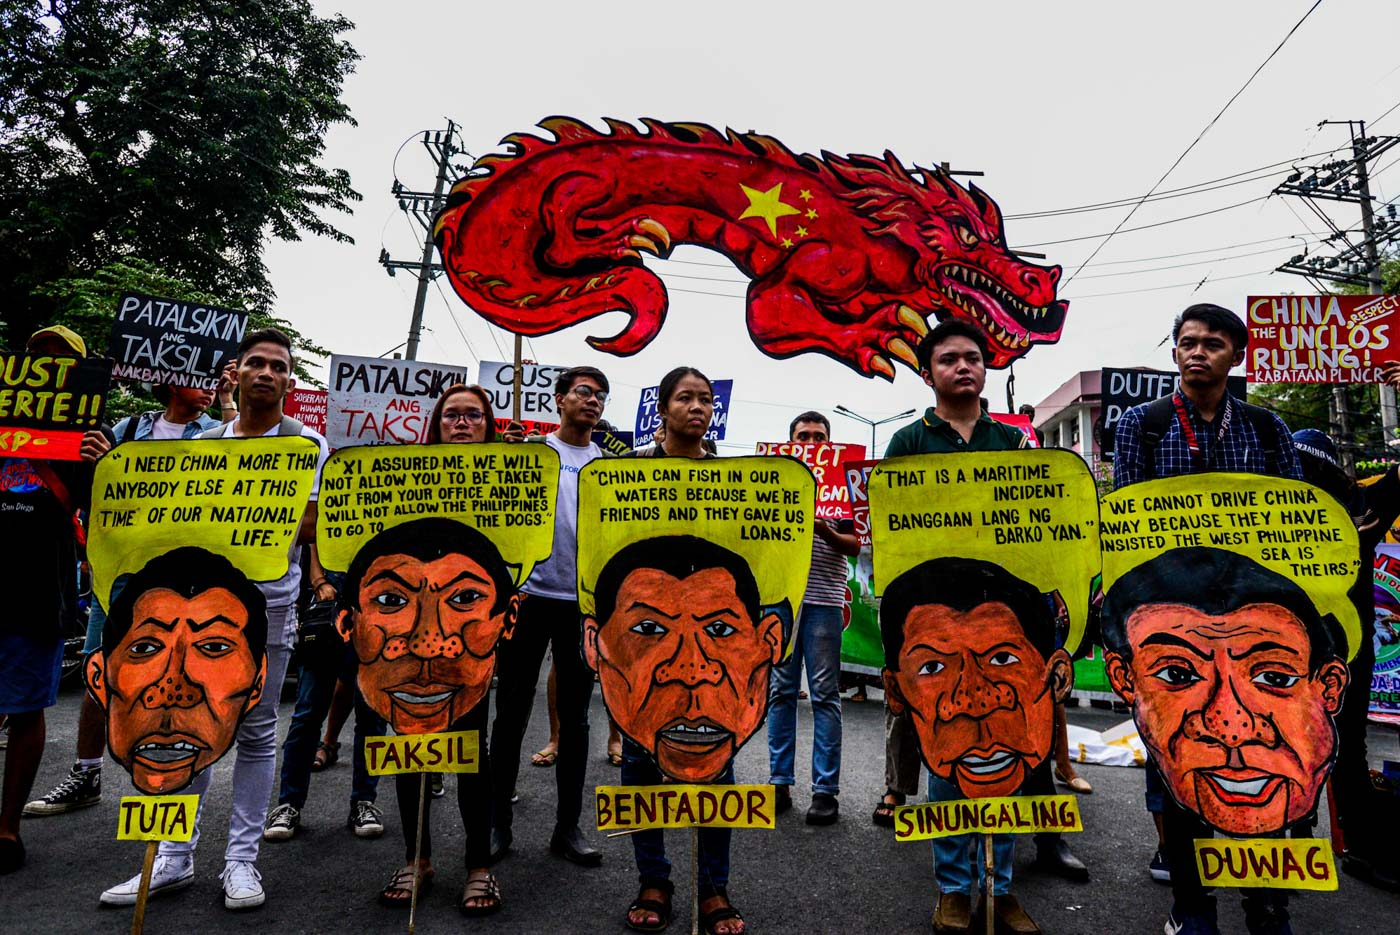 SYMBOL. Protesters hold image of a Chinese dragon and an image of President Rodrigo Duterte in a rally in Mendiola, Manila on July 12, 2019. Photo by Maria Tan/Rappler